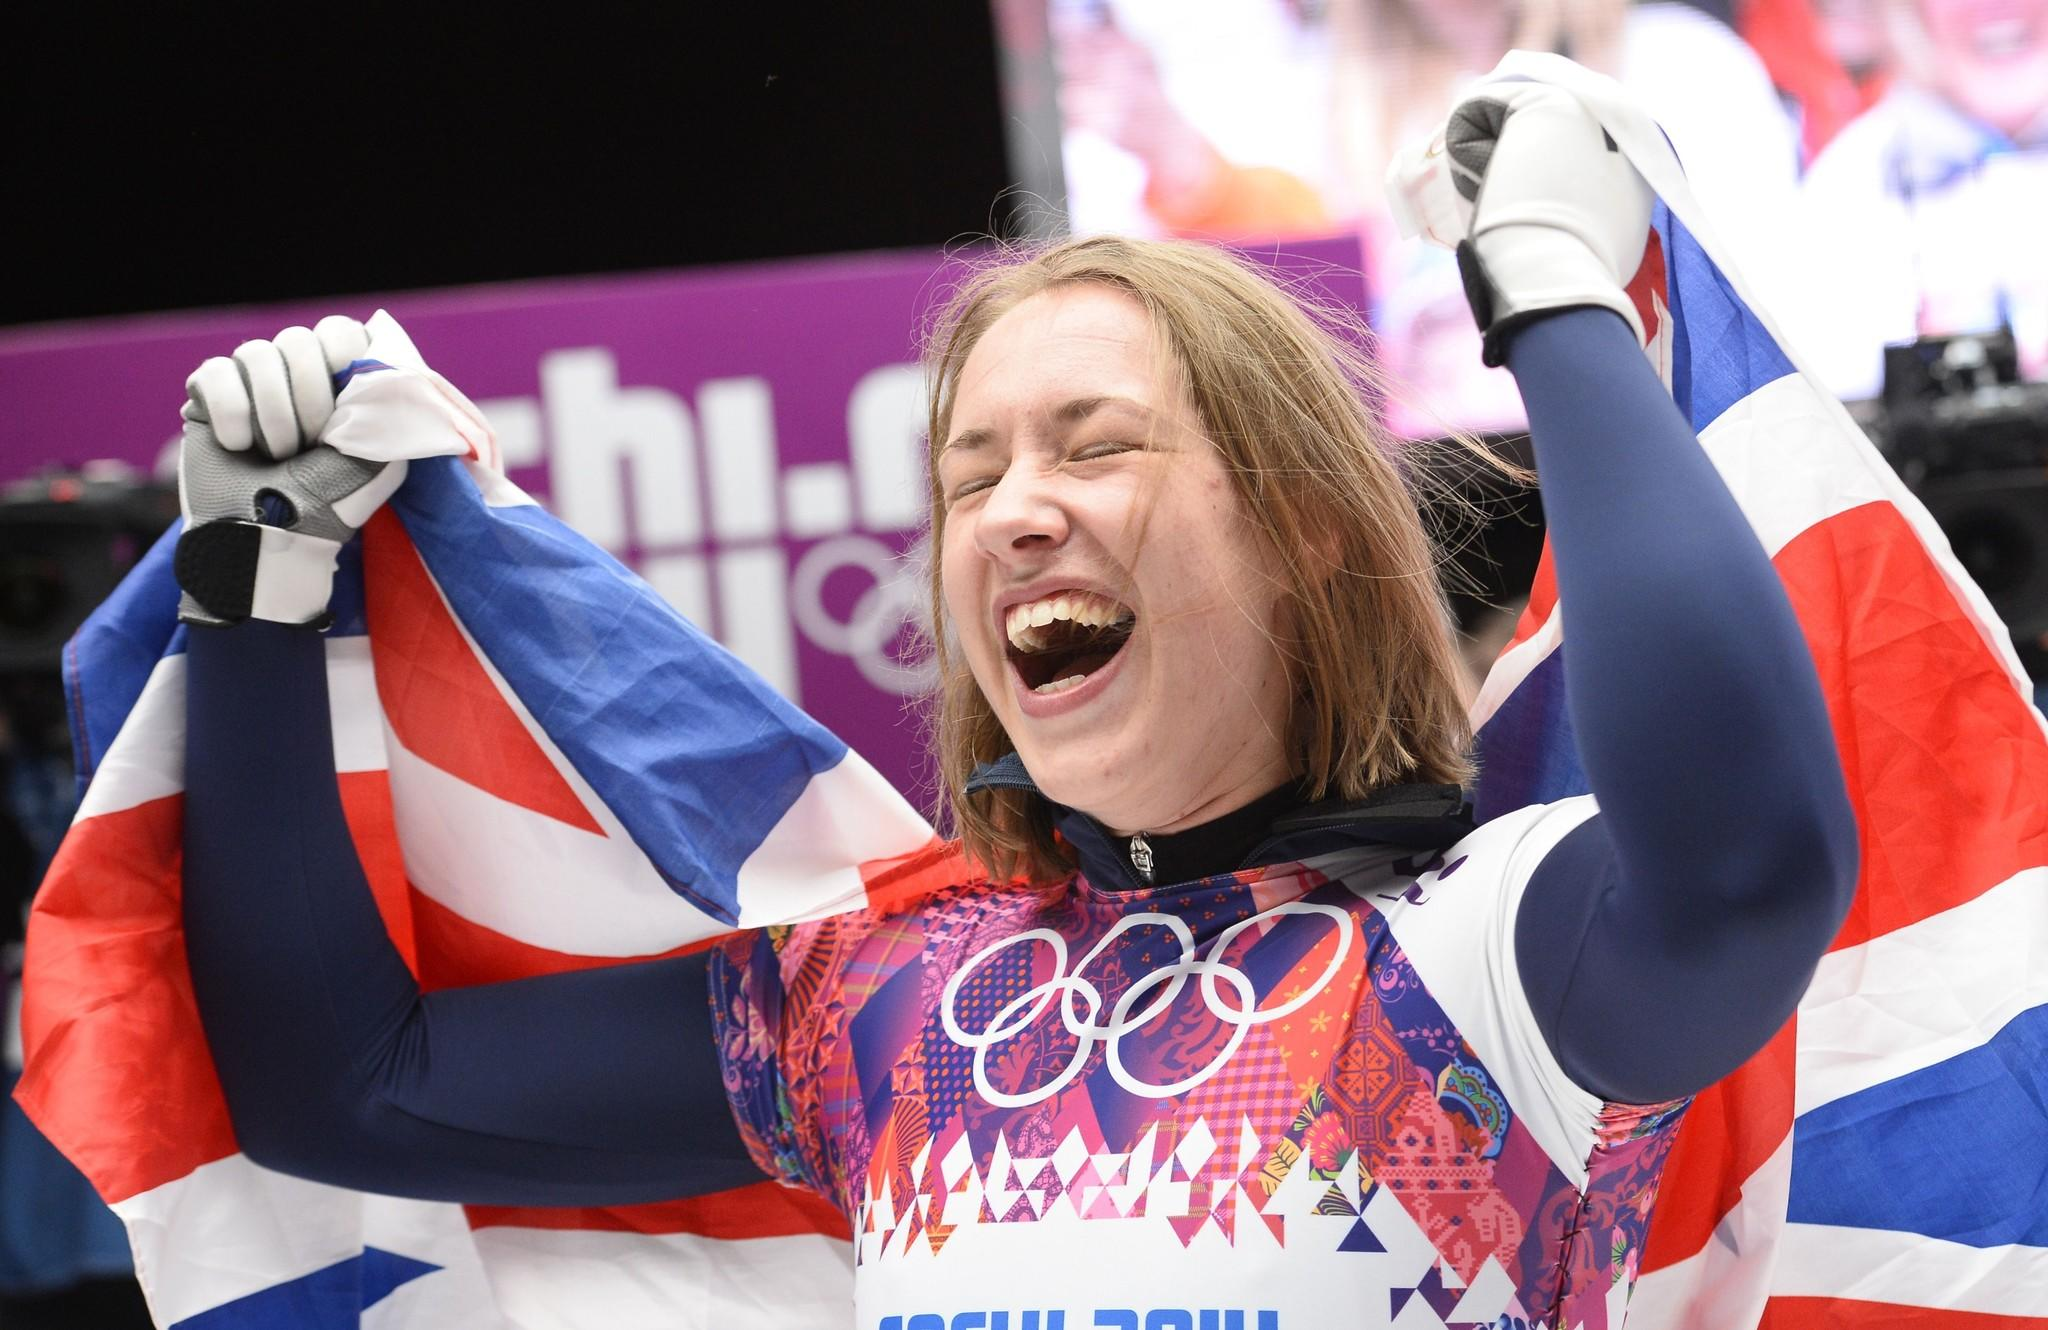 Great Britain's Elizabeth Yarnold celebrates winning gold in the women's skeleton race Friday.